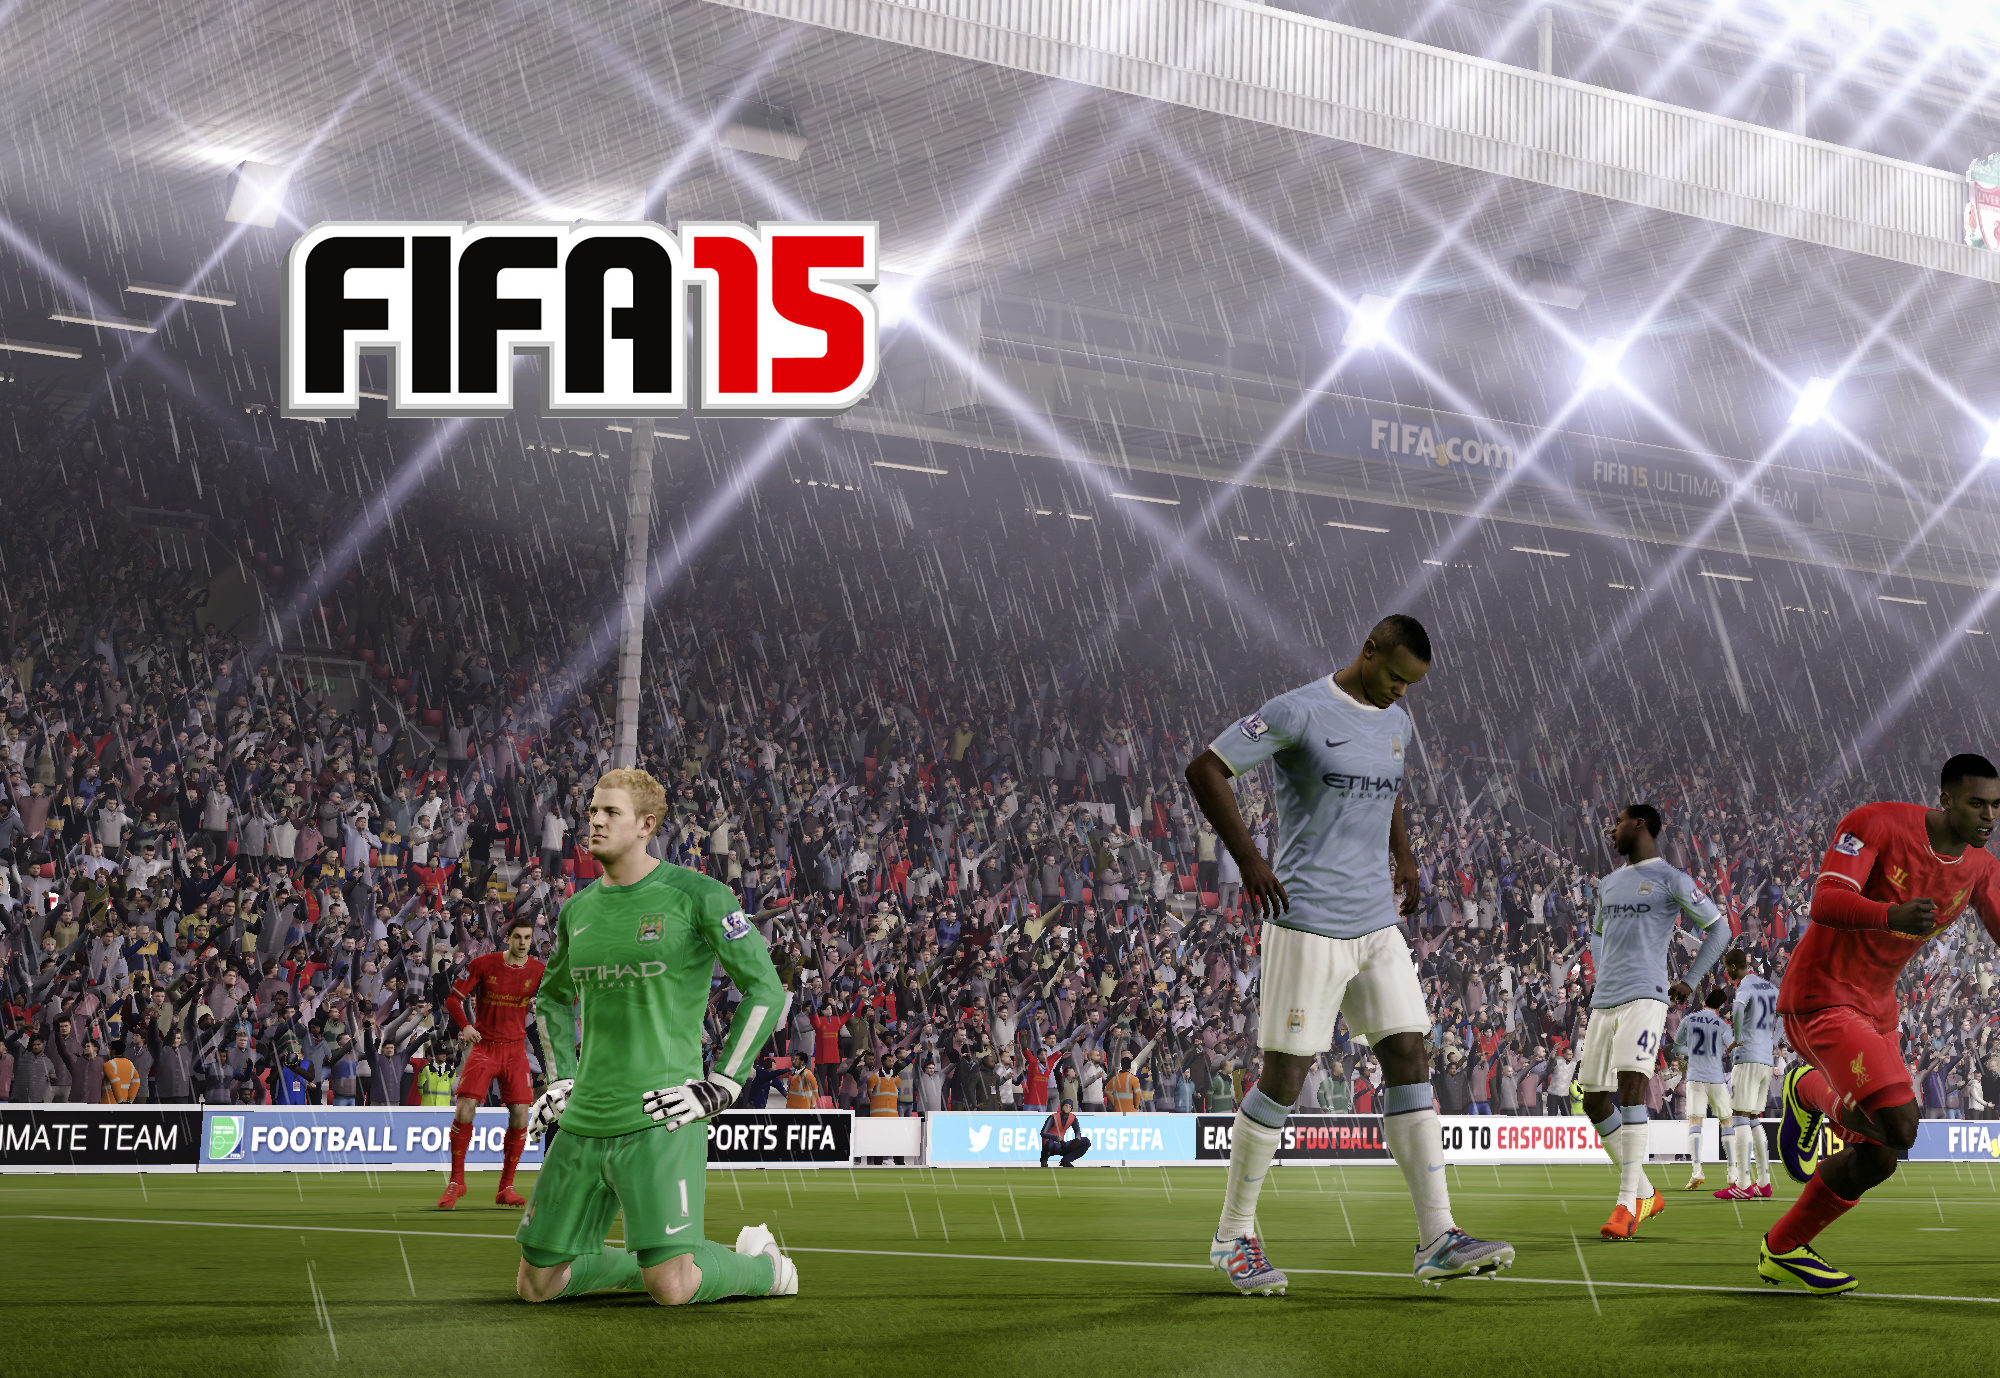 Pictures of FIFA 15 | 2000x1378